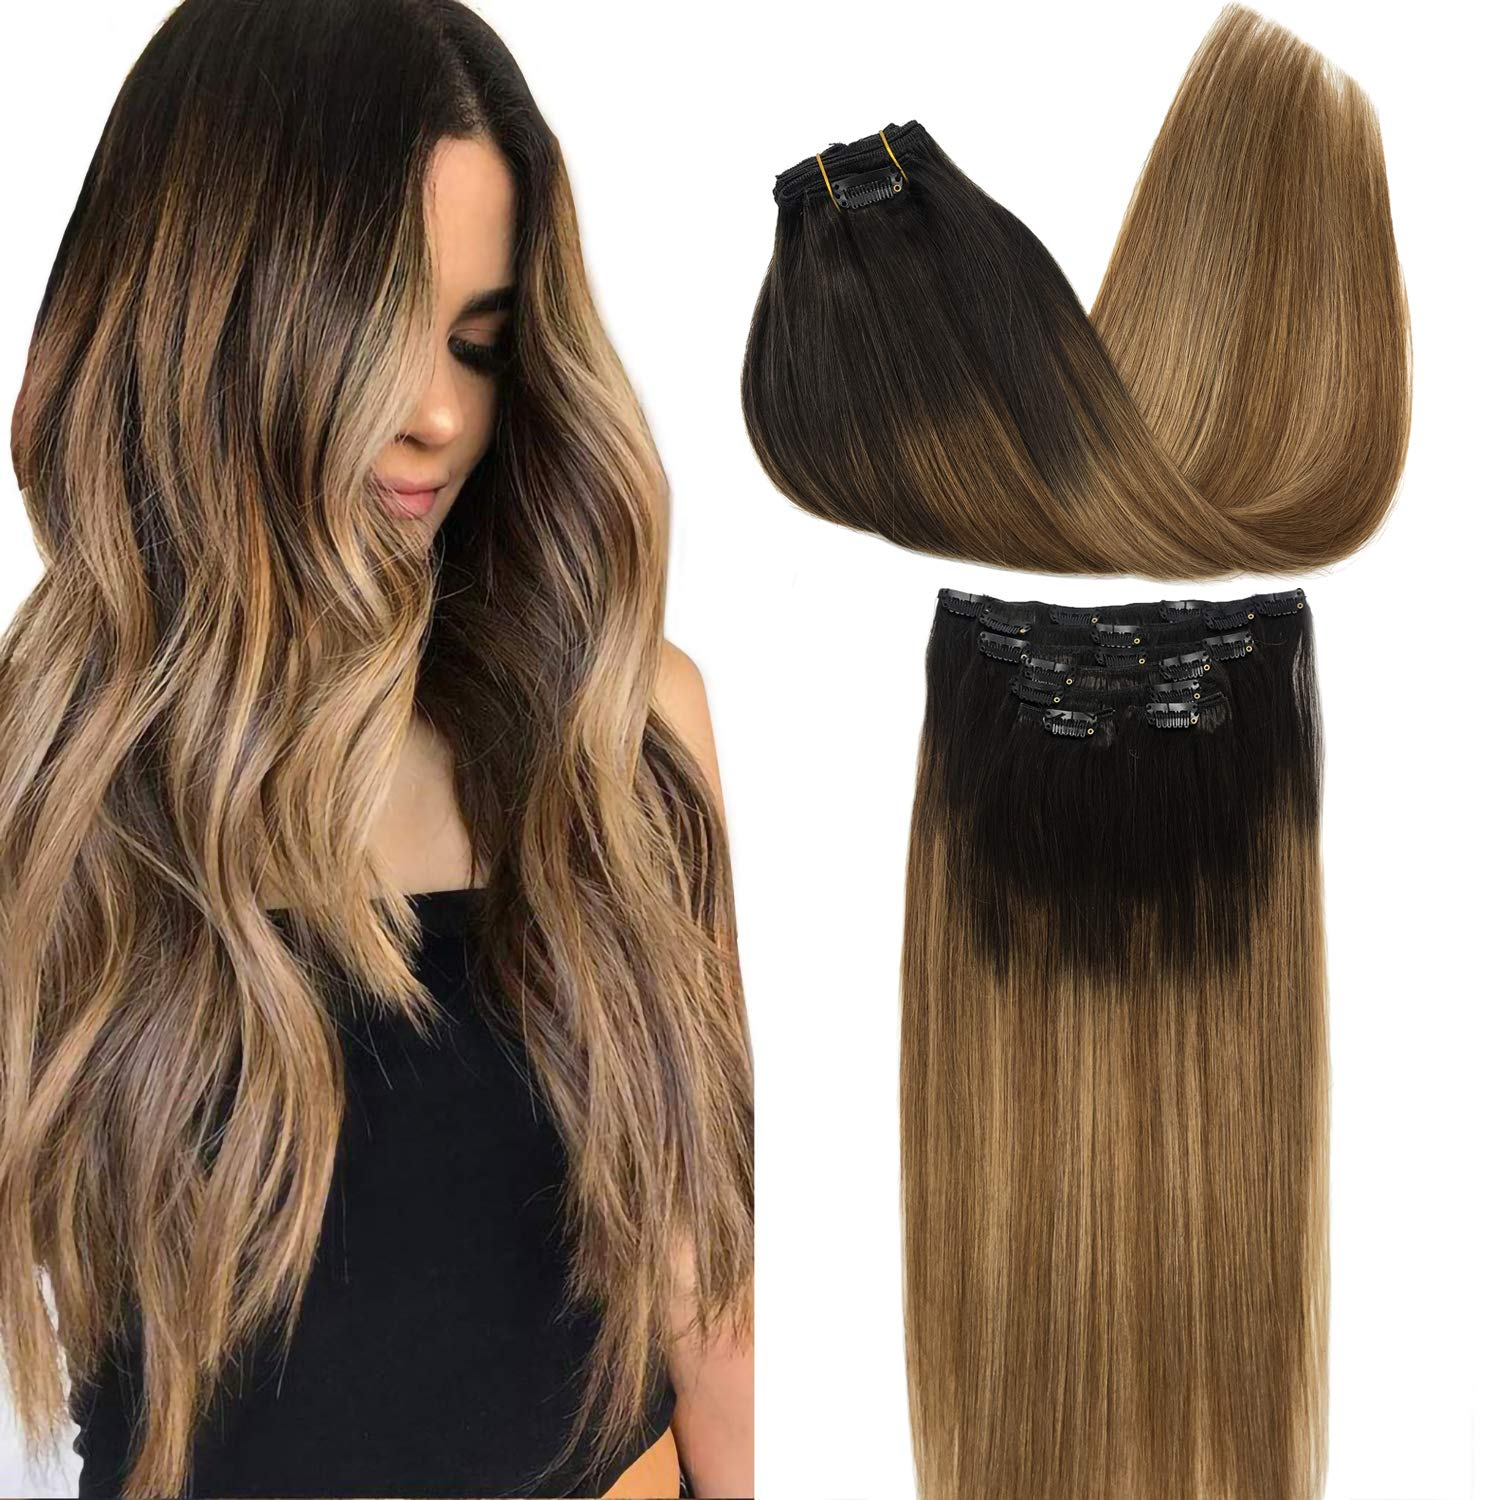 Amazon Com Goo Goo Remy Hair Extensions Clip In Human Hair Extensions Ombre Dark Brown Fading To Chestnut Brown And Dirty Blonde Ombre Clip In Extensions Balayage Hair Extensions 7pcs 120g 24